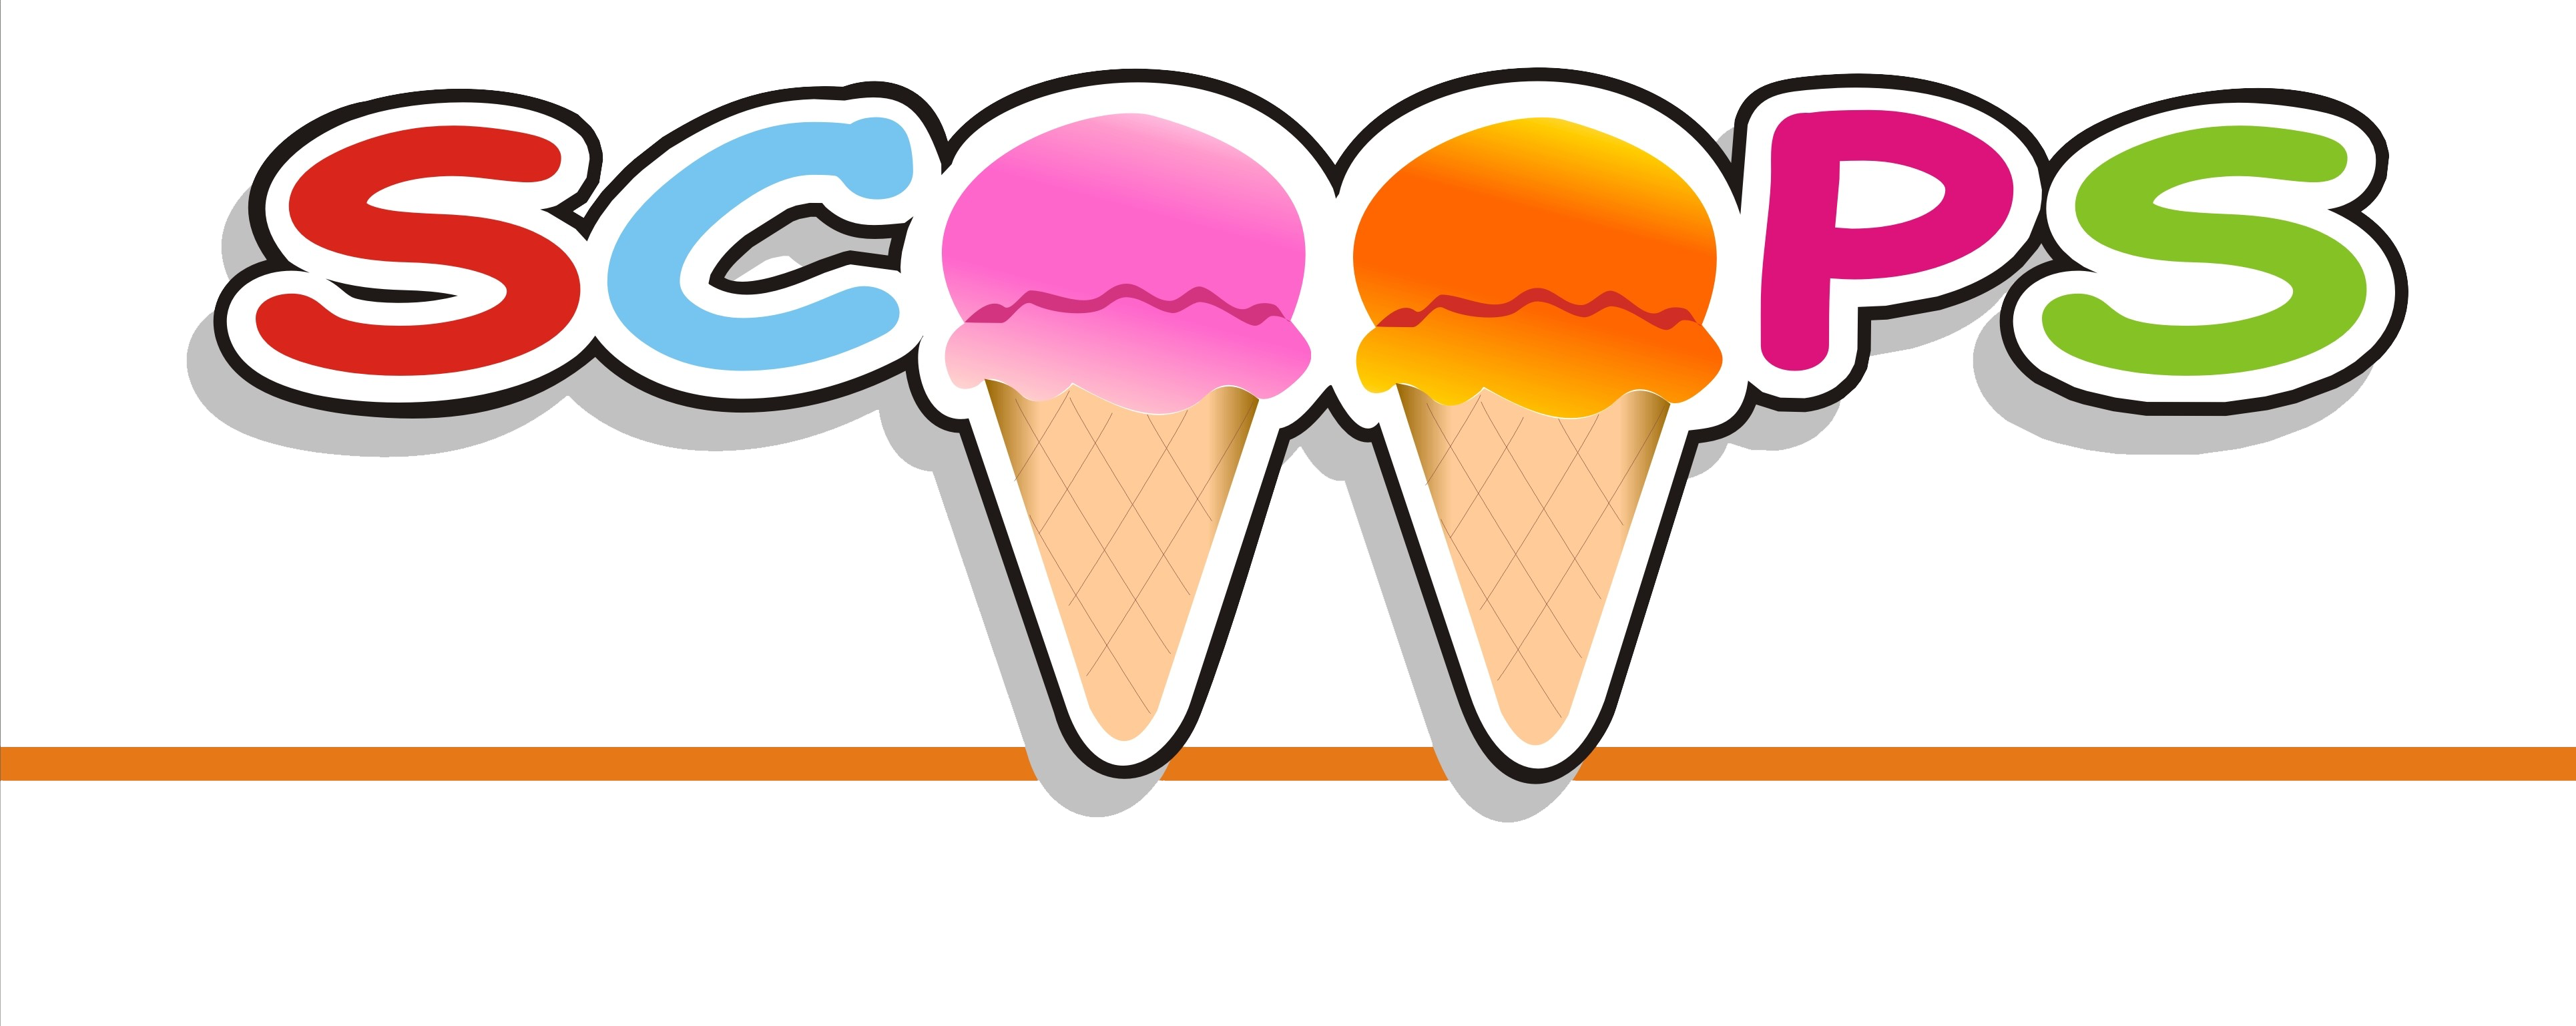 The original scoops ice. Icecream clipart party